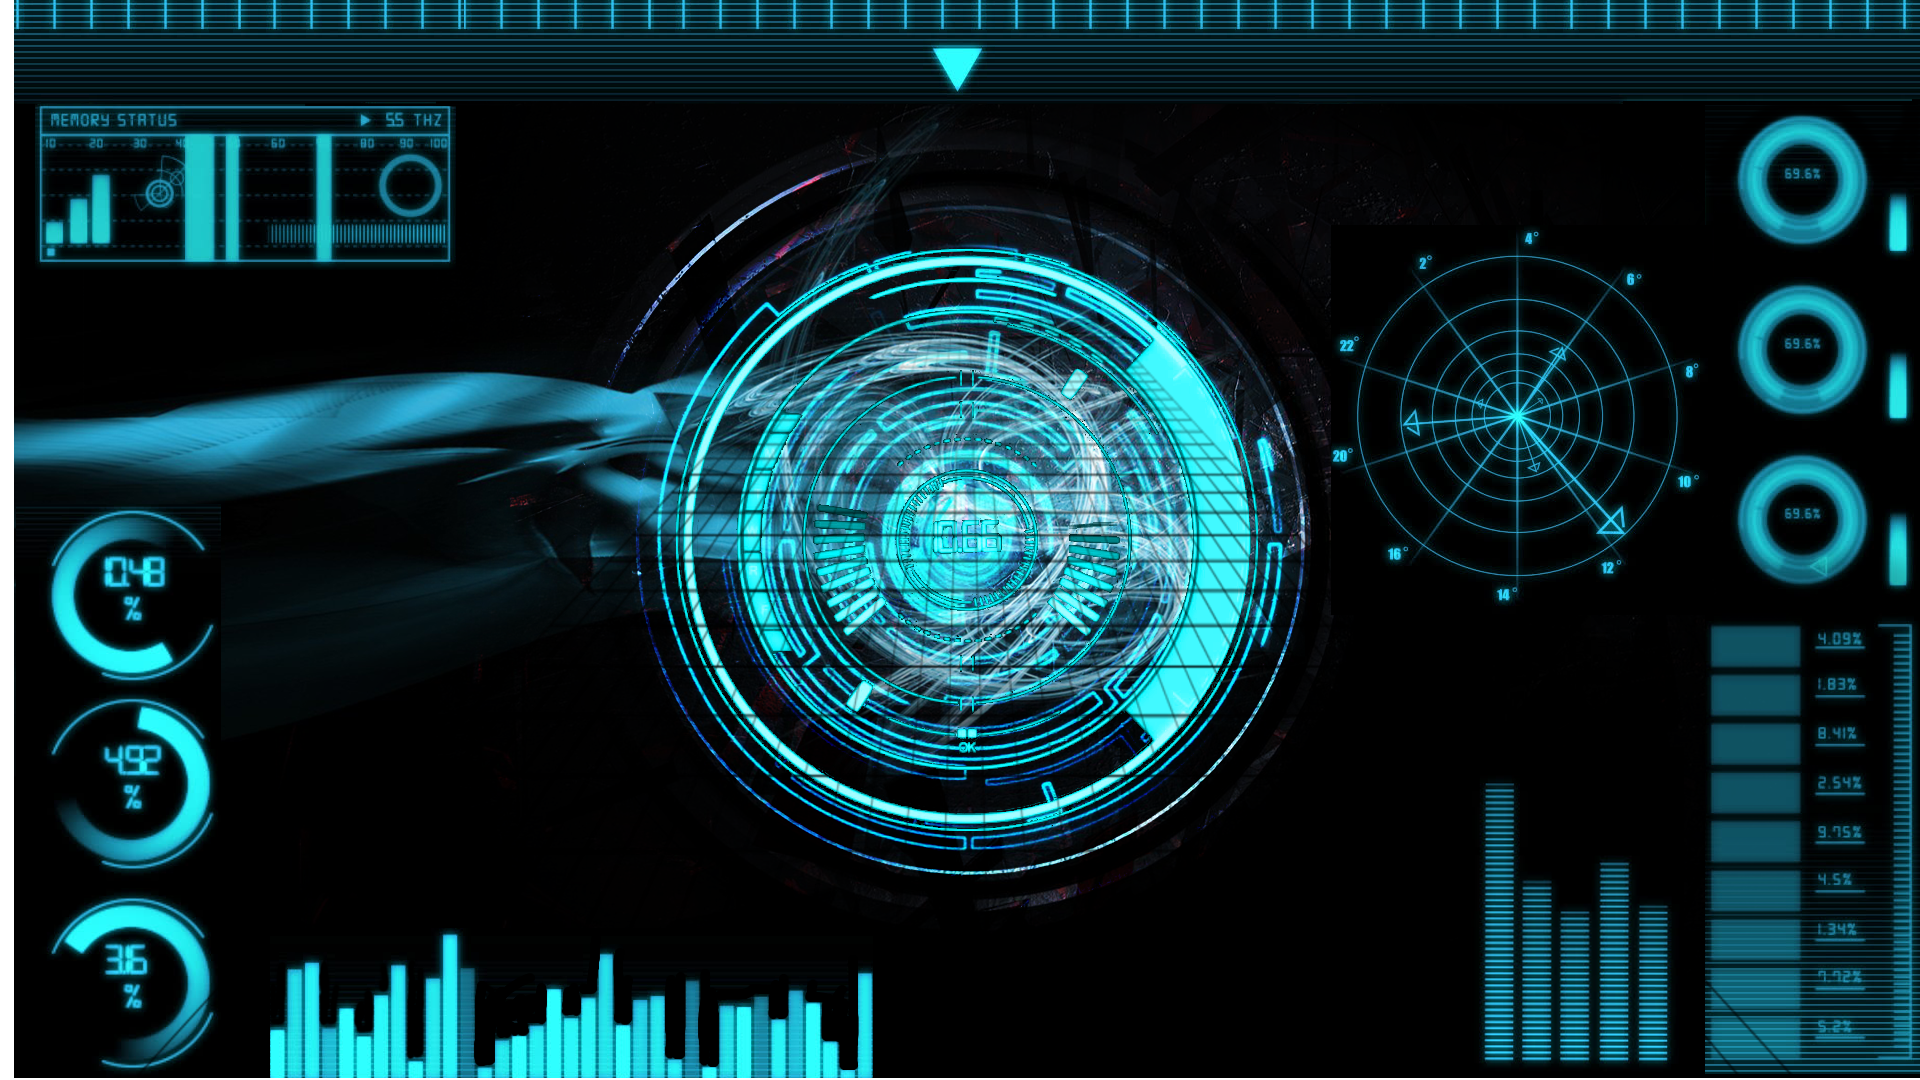 Futuristic Hud Full HD Wallpaper and Background Image ...